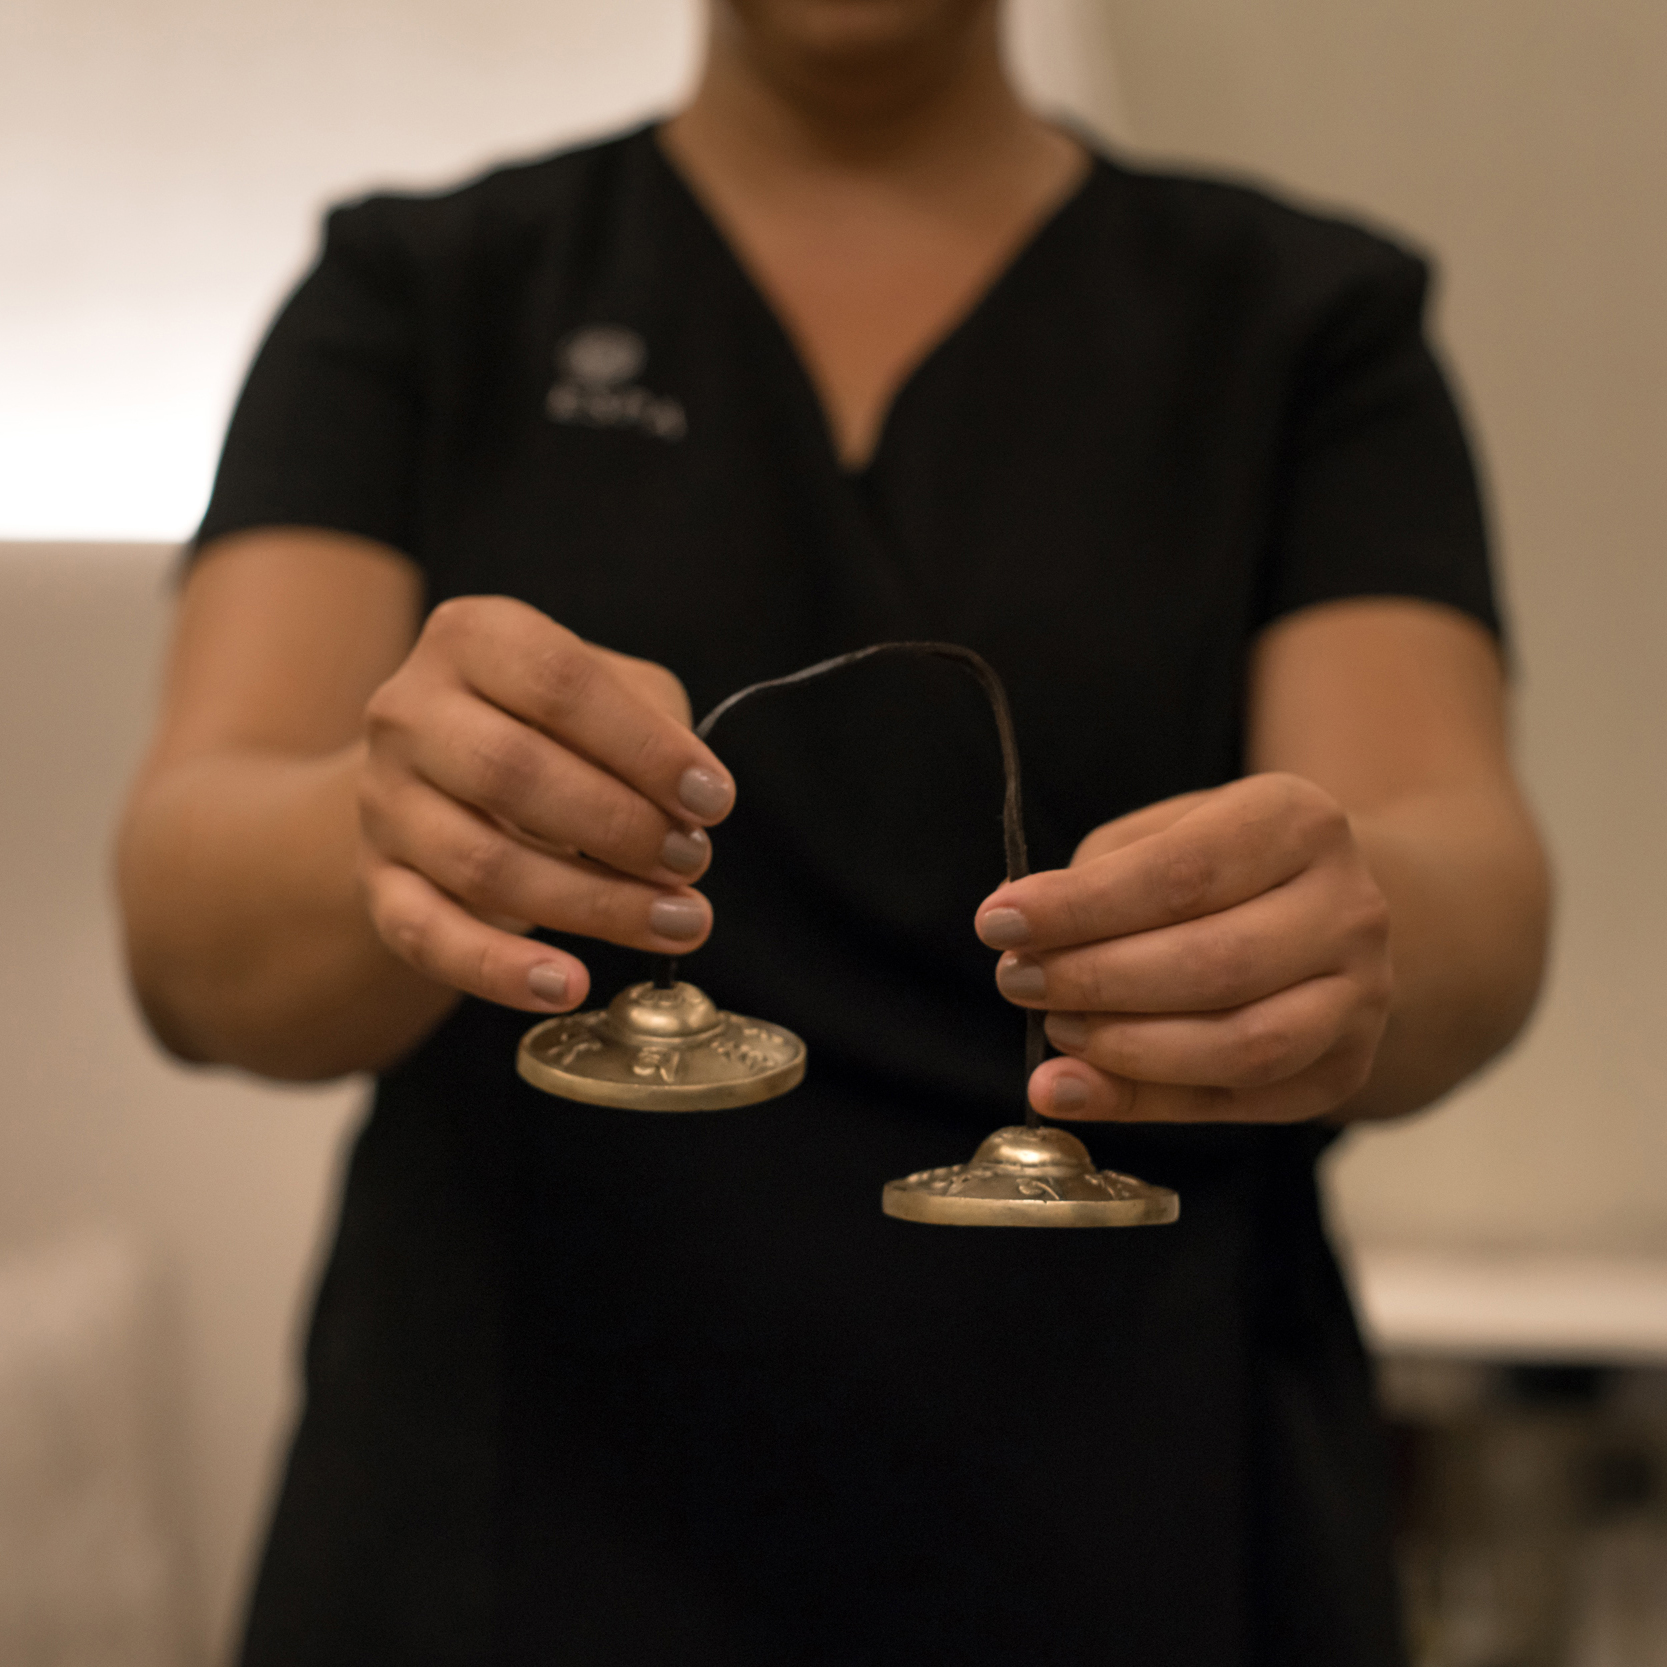 Your experts - Our team consists of traditional Chinese medicine acupuncturists and herbalists, naturopaths, physiotherapists, personal trainers and spa professionals.